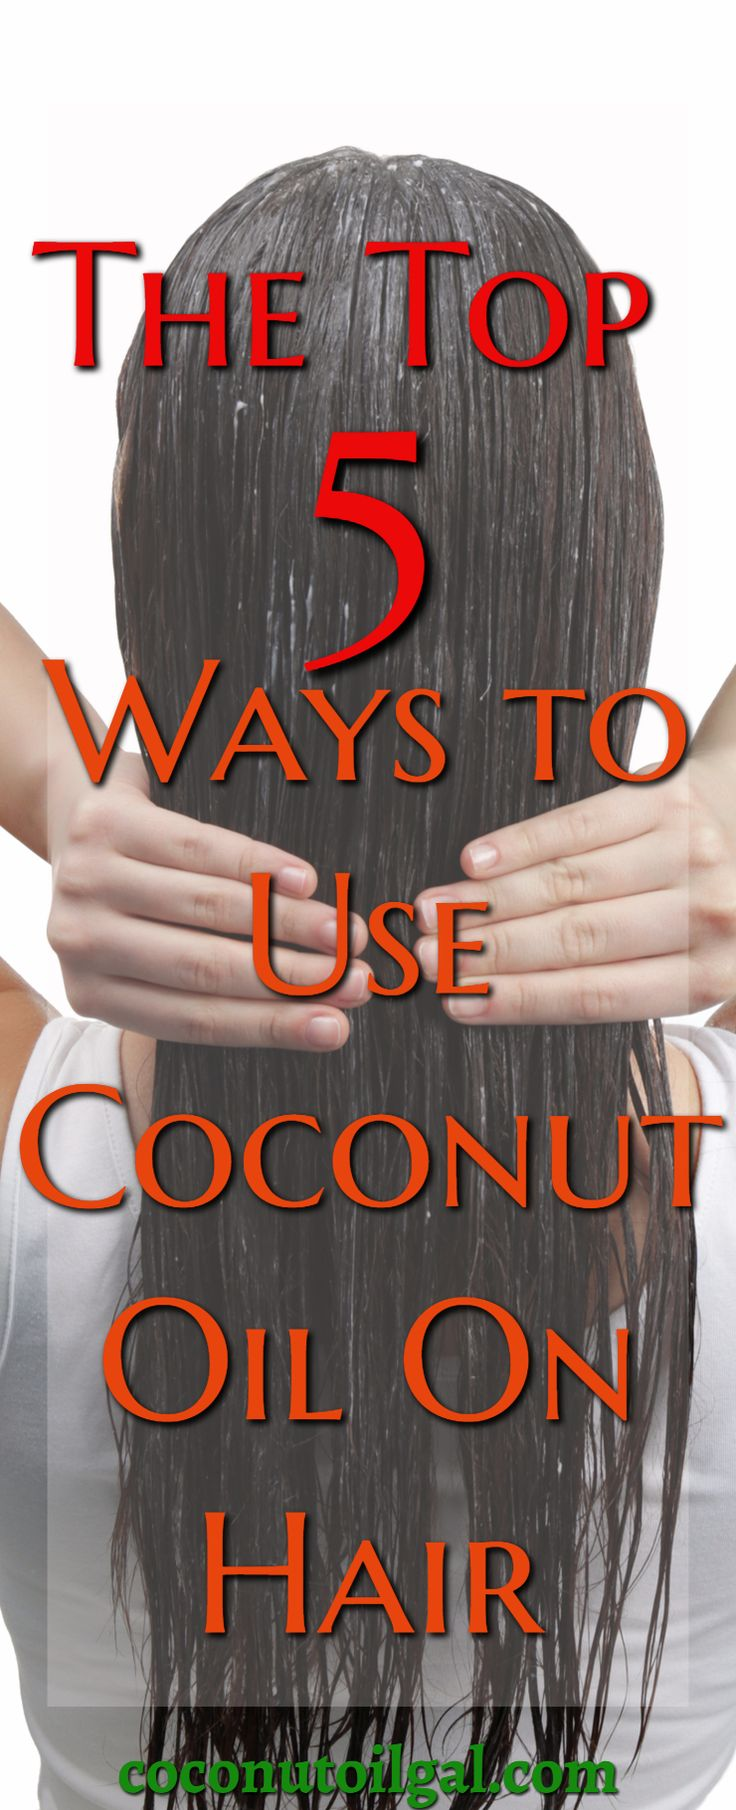 Trying to figure out the best way to use coconut oil on your hair can be tricky. Here are the top 5 ways to use coconut oil on hair. Coconut oil mask, coconut oil hair treatment, coconut oil hair balm. Coconut oil can also be used as a detangler.